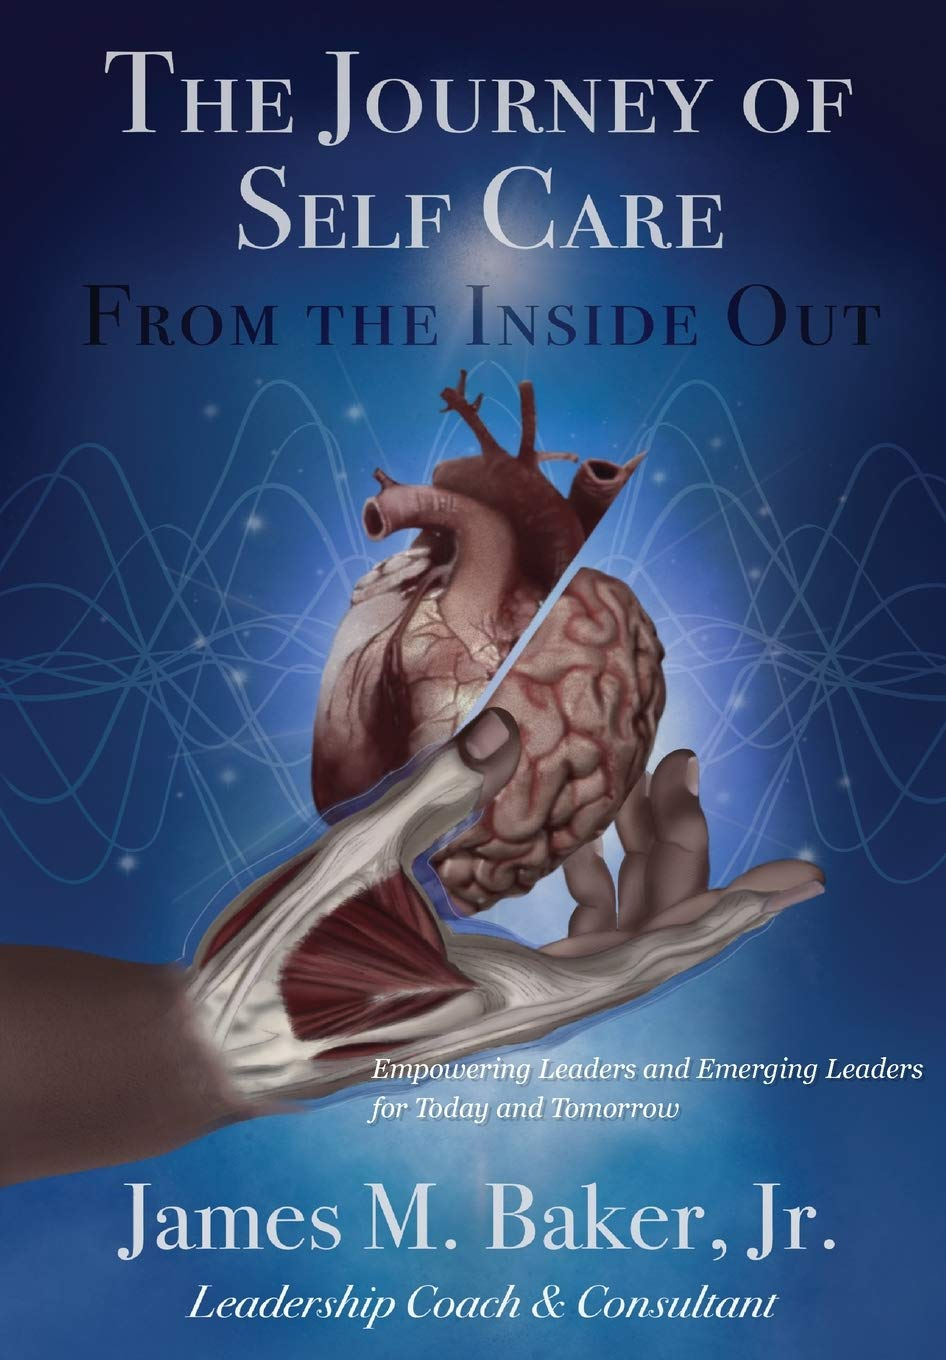 The Journey of Self Care From the Inside Out: Empowering Leaders and Emerging Leaders for Today and Tomorrow